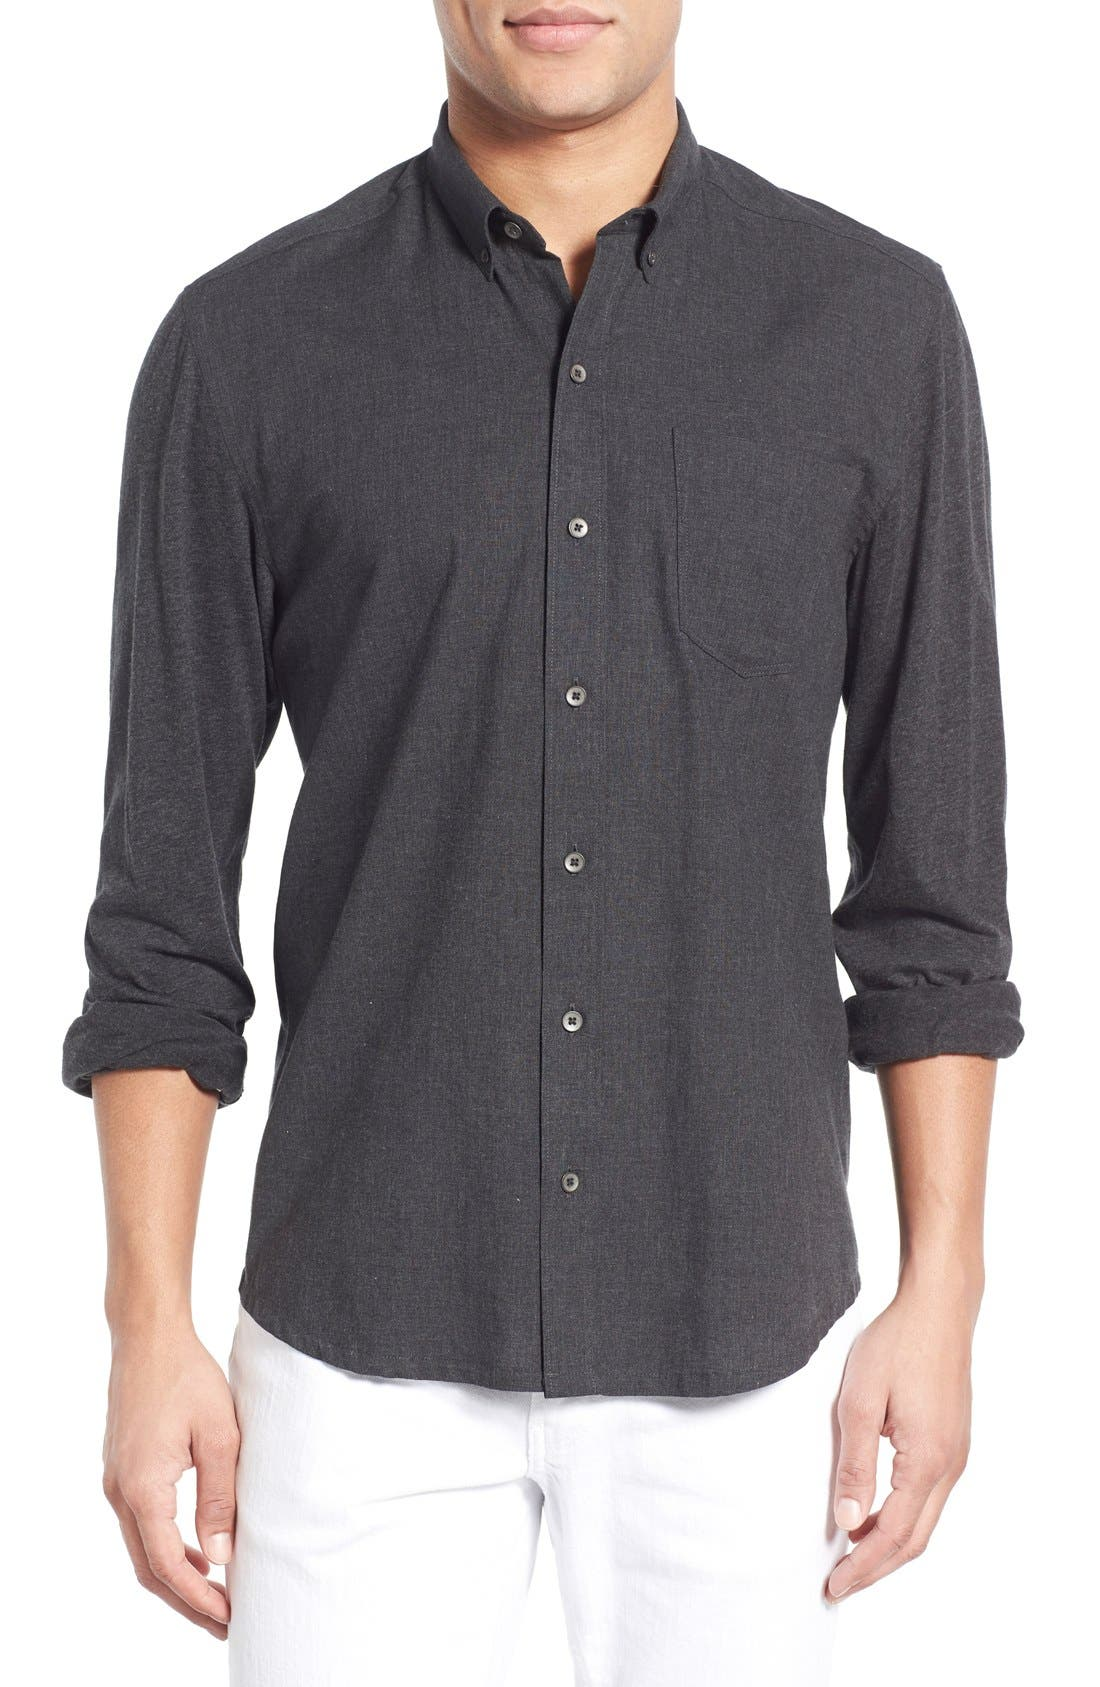 'Reworked' Trim Fit Sport Shirt,                             Main thumbnail 1, color,                             010